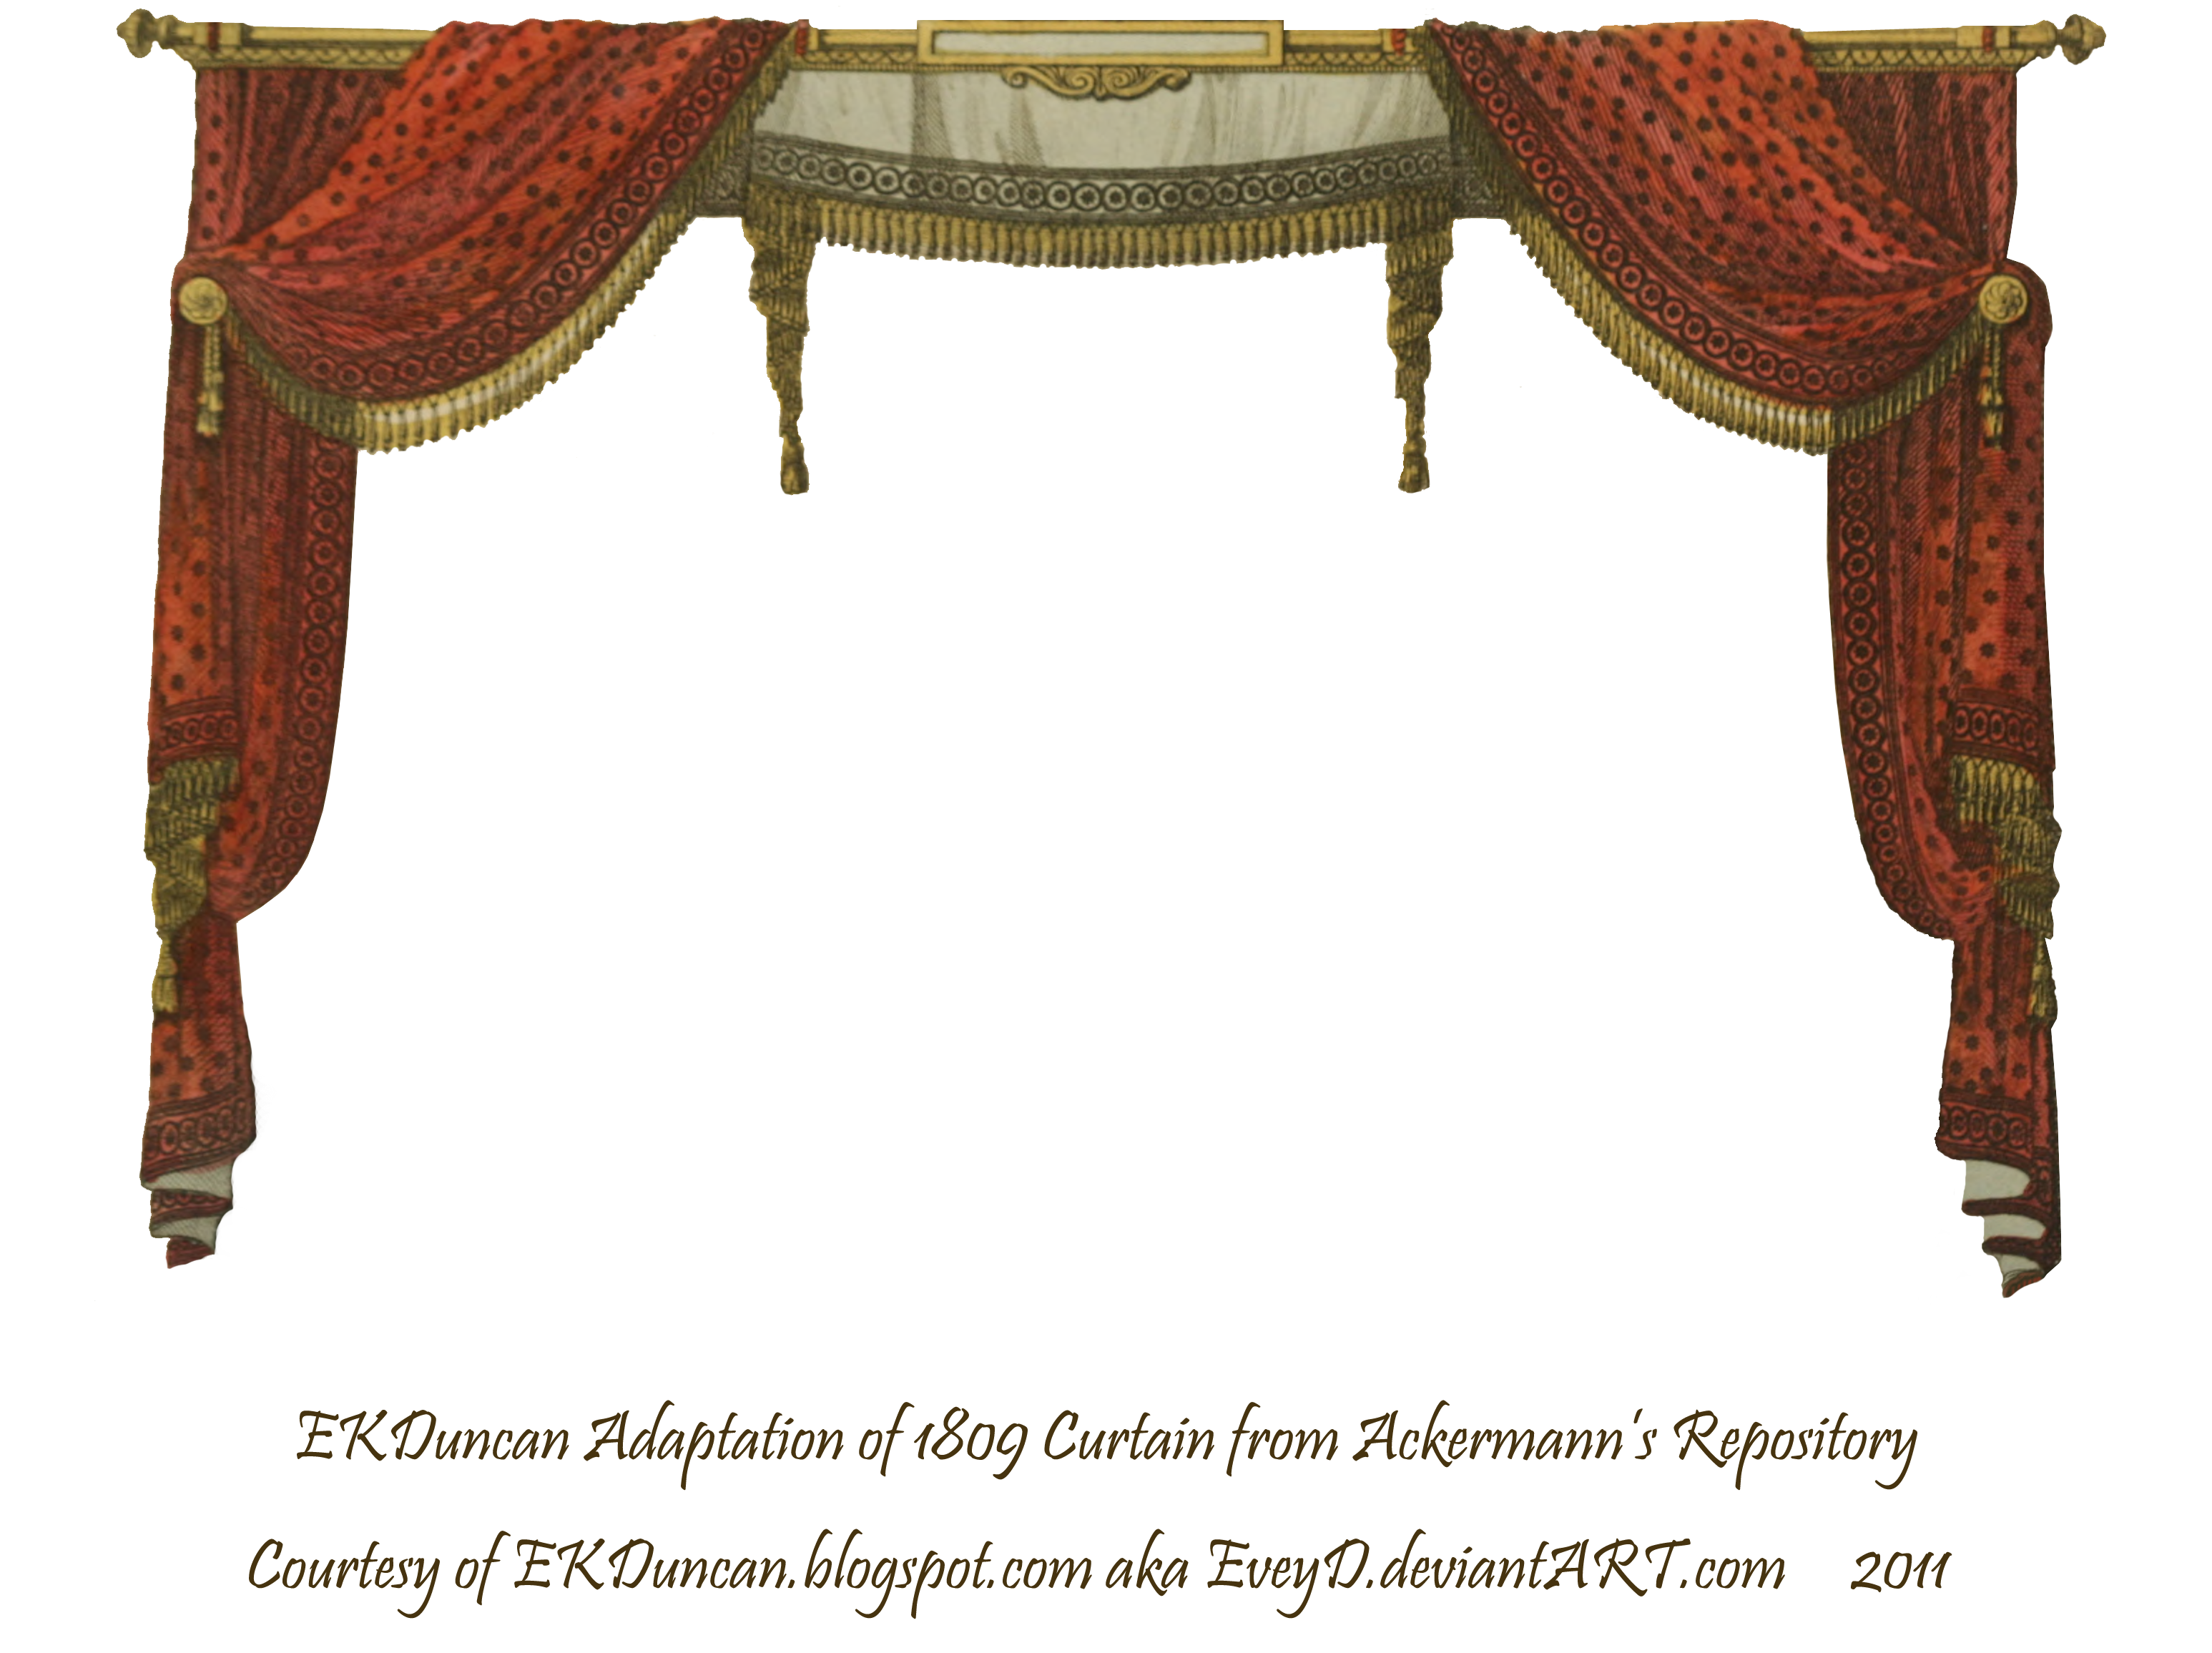 Theatre curtains png - 1809_leopard_curtain___red_by_eveyd D4eyge3 Png 3 093 2 311 Pixels